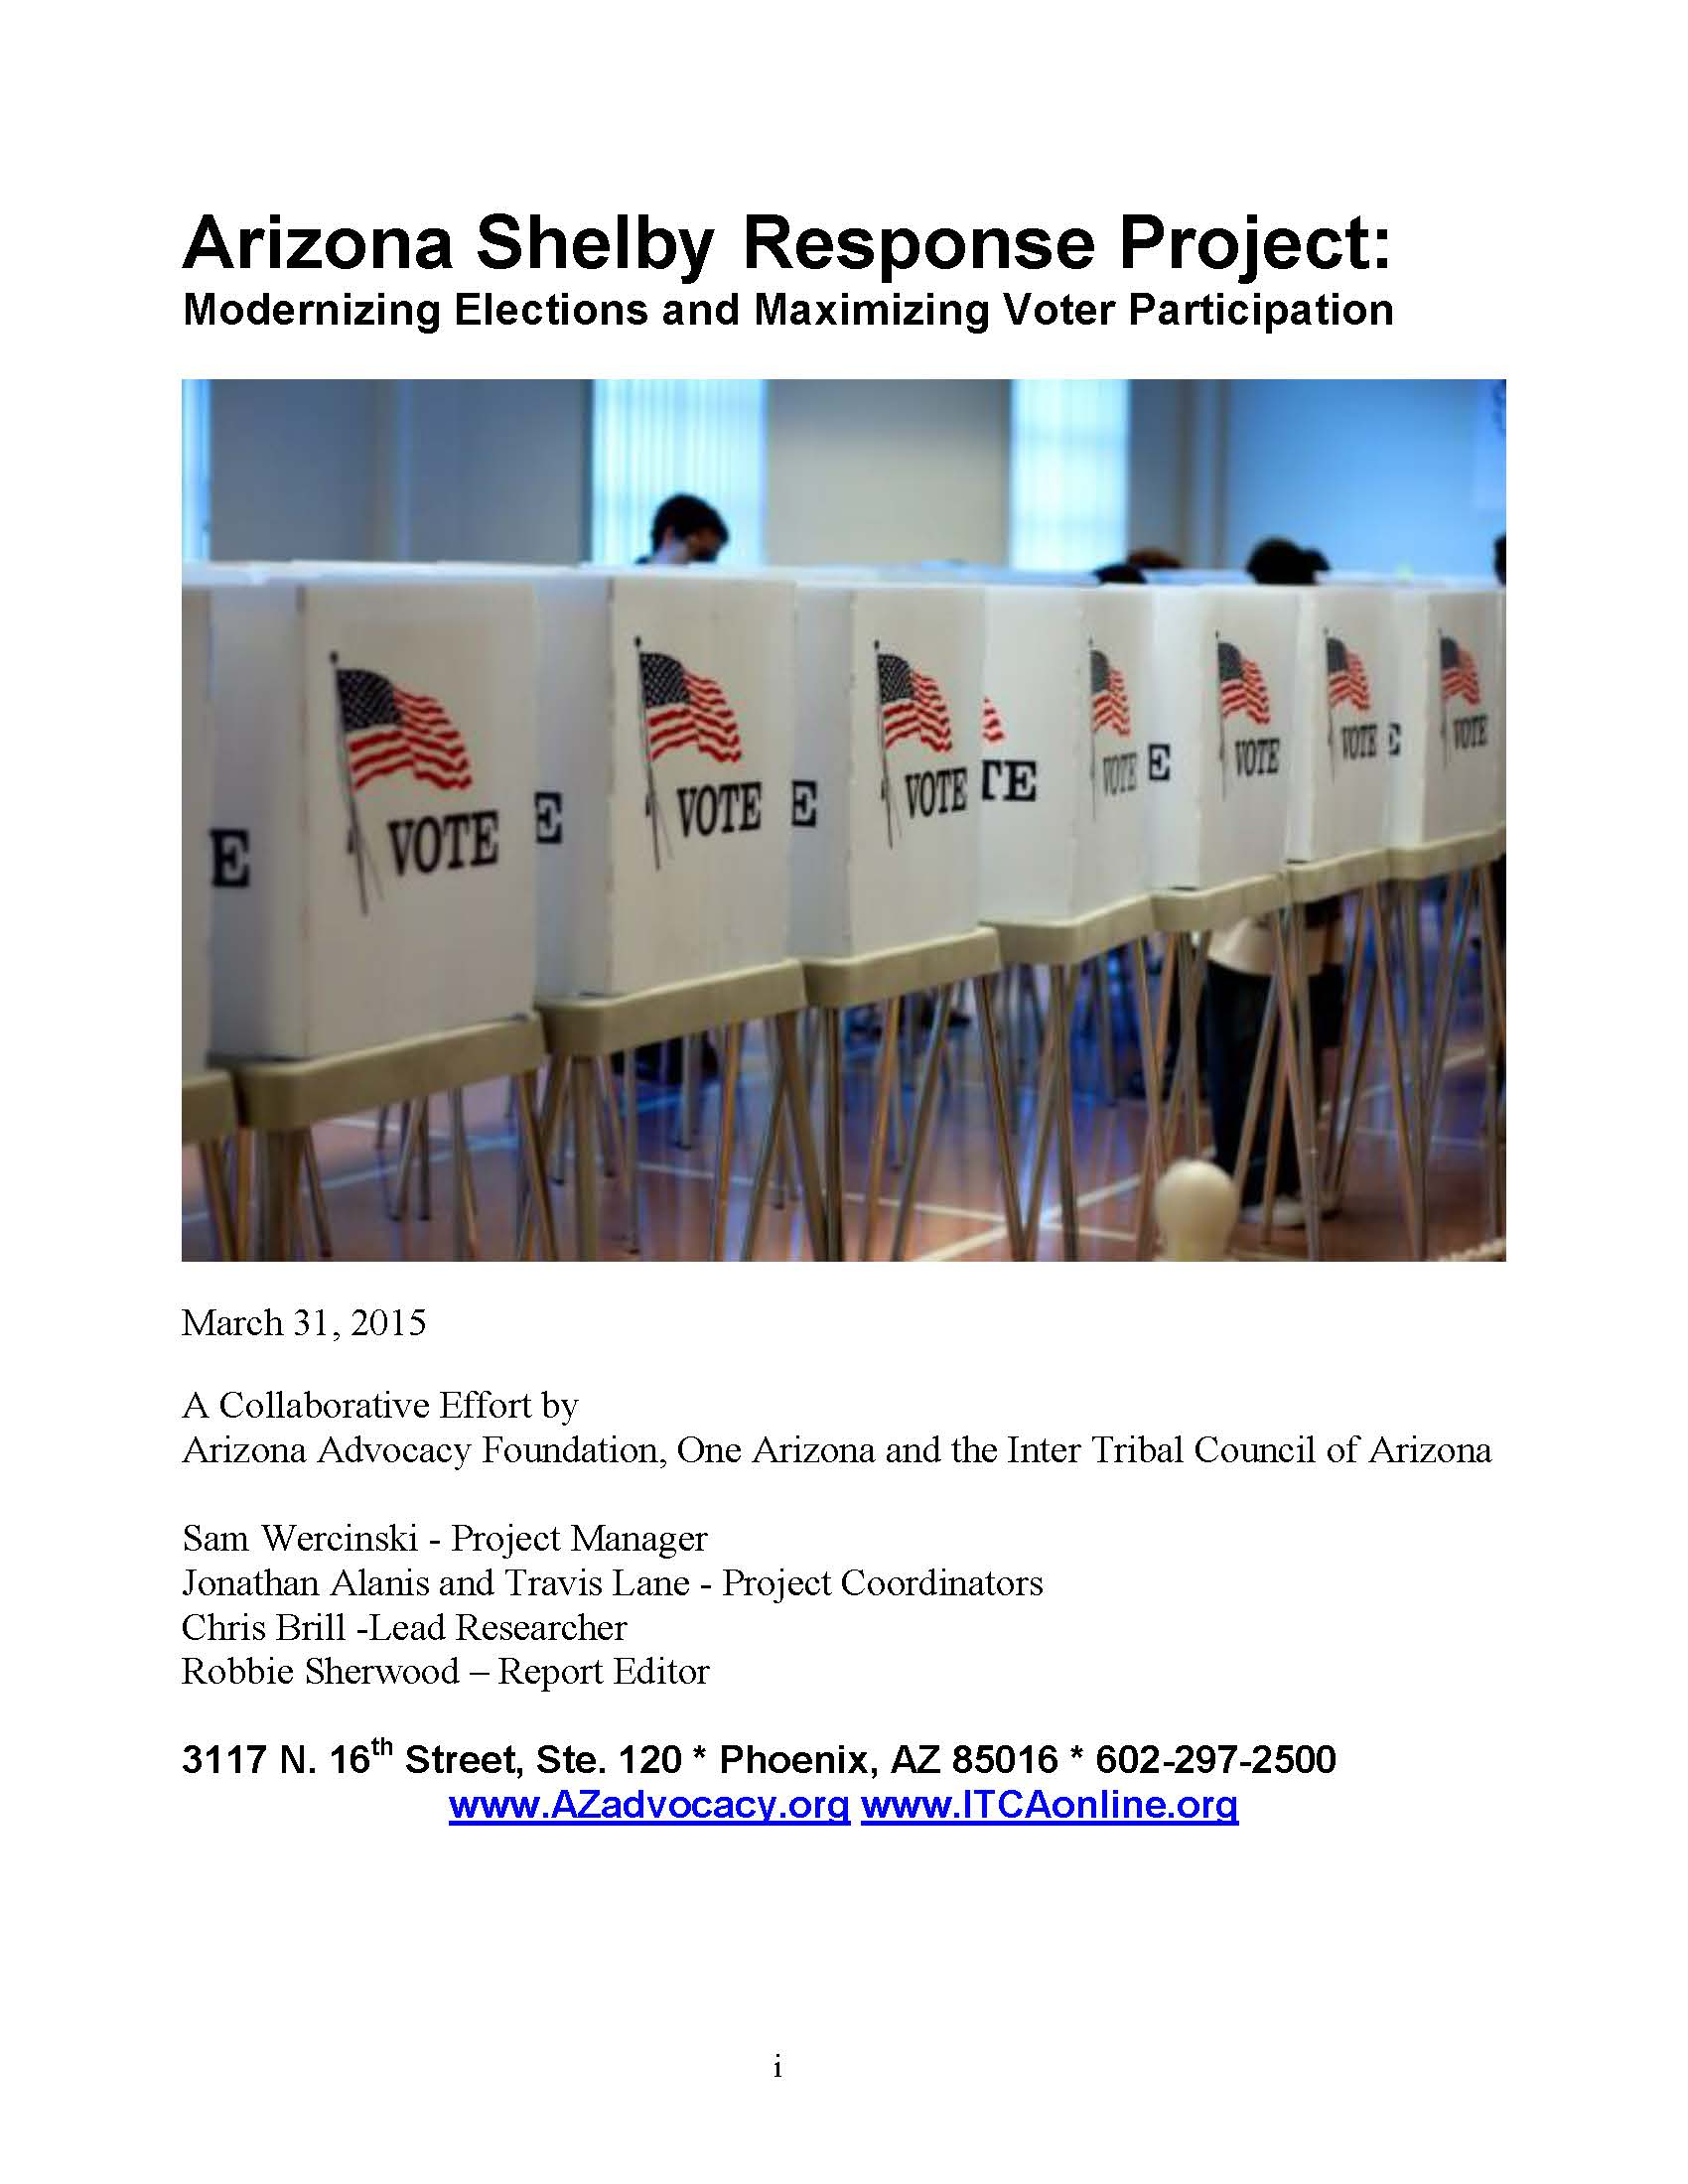 Arizona Shelby Response Project: Modernizing Elections and Maximizing Voter Participation